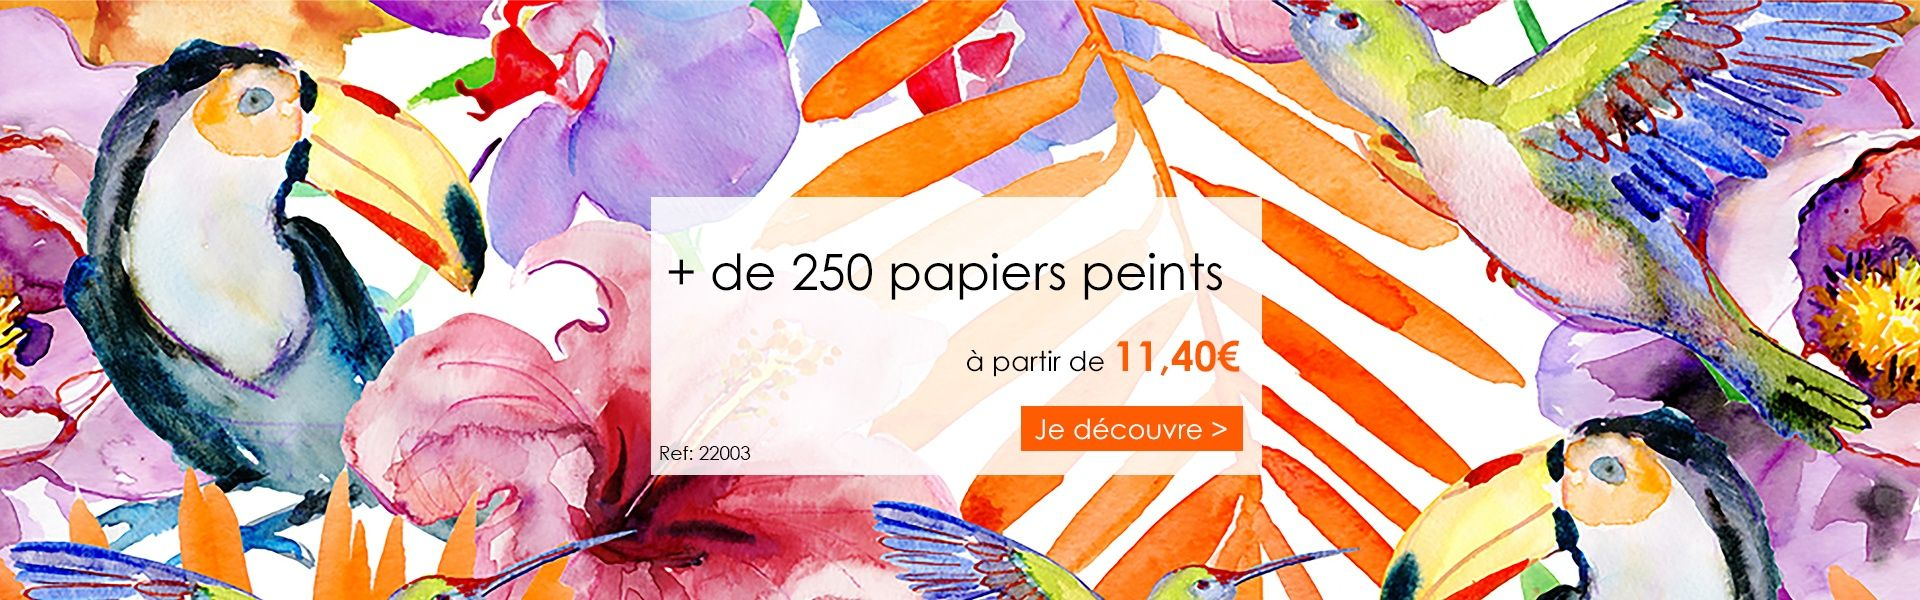 Tableau deco decoration murale design et moderne hexoa - Fabricant de papier peint en france ...